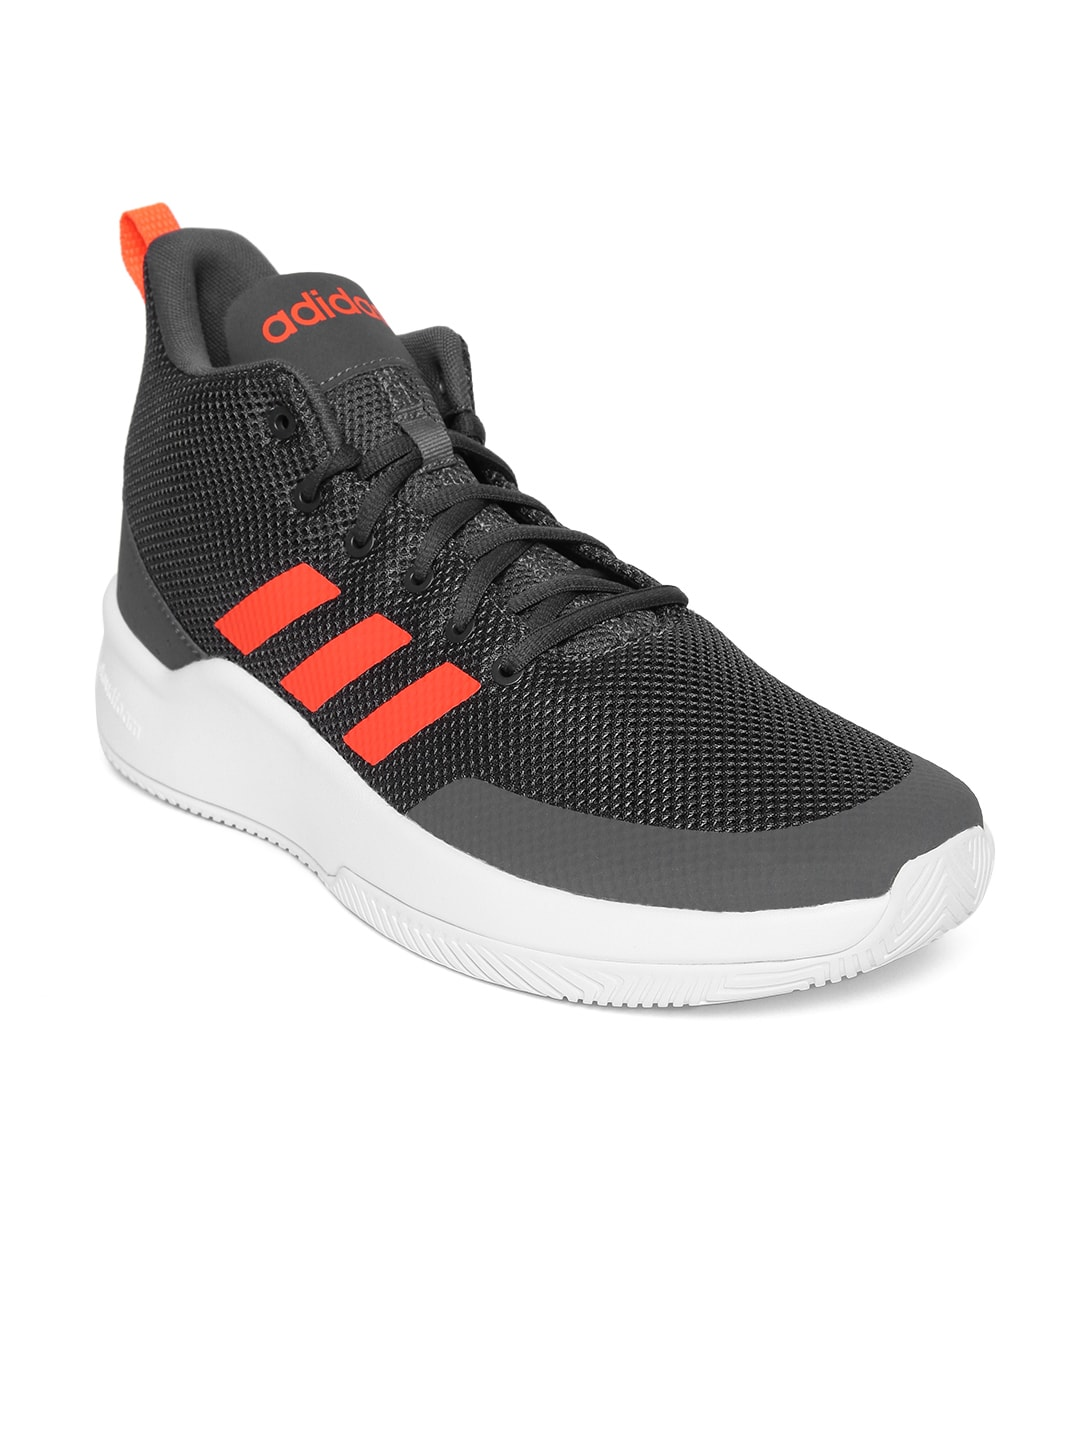 97a0bba7c57 Adidas Shoes - Buy Adidas Shoes for Men   Women Online - Myntra